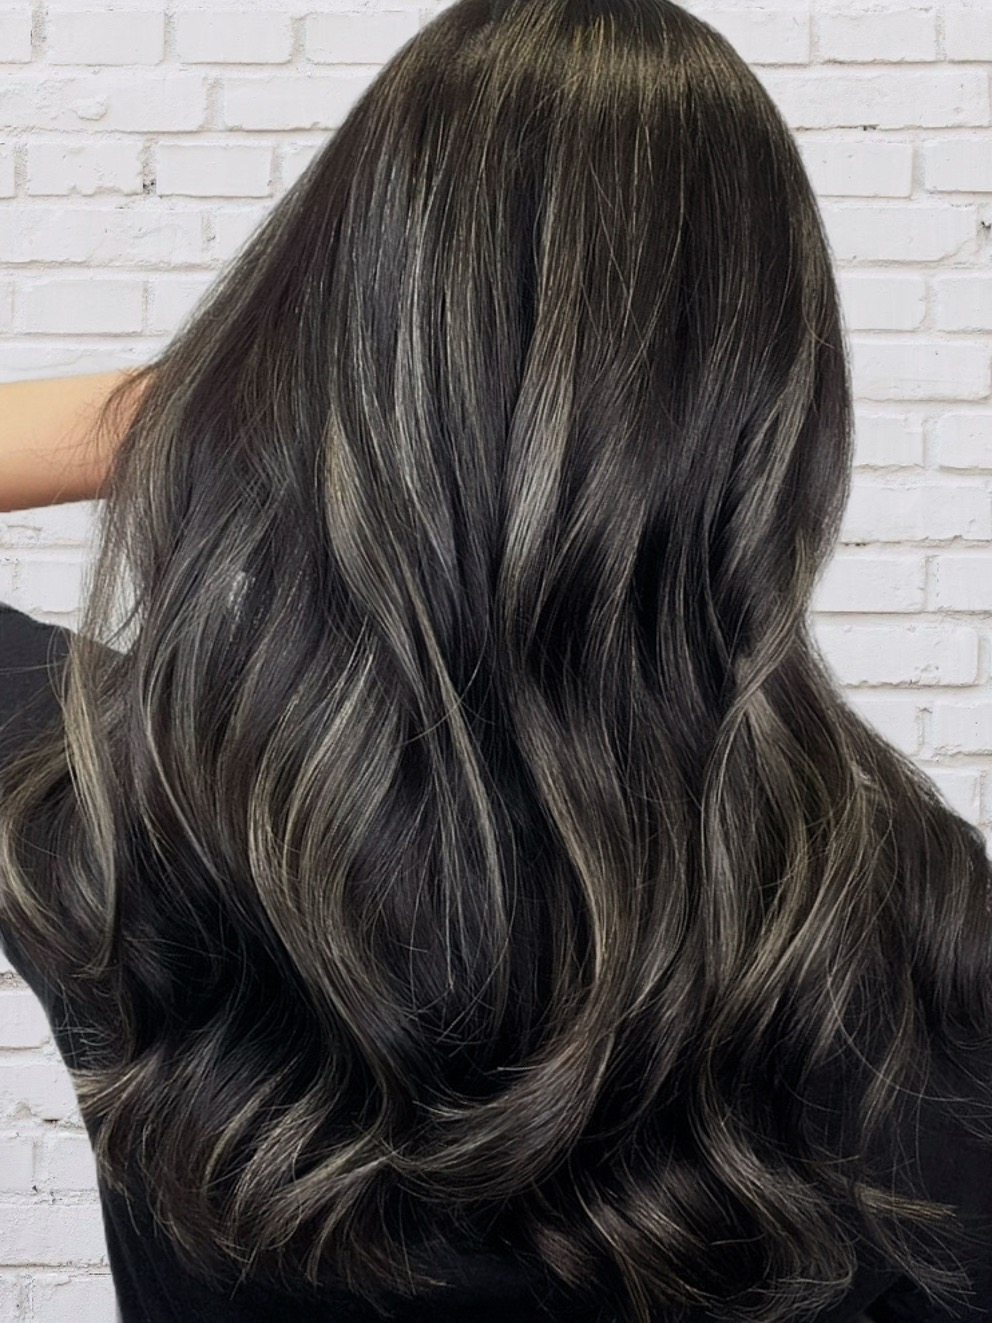 Brown Hair Colour Trend 2022: Charcoal Brown